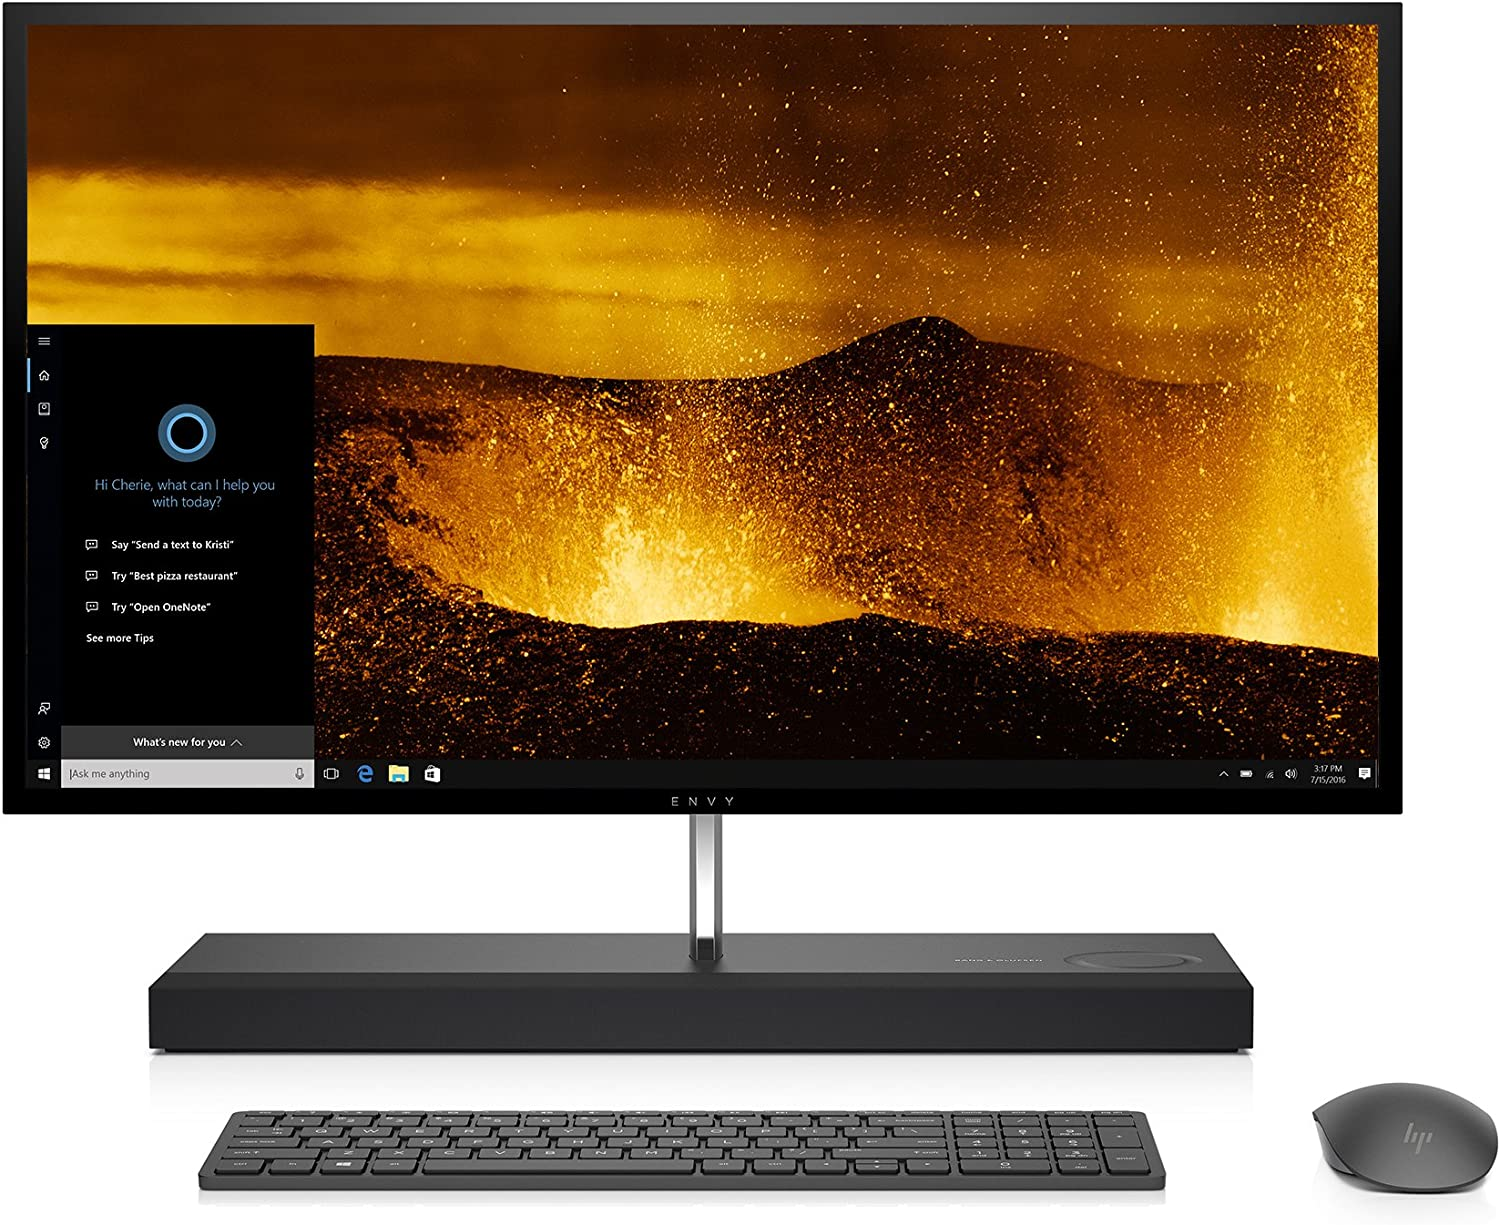 HP 27-b010 Envy All-in-One (Intel Core i7-6700T, 16GB RAM, 1TB HHD, 128G SSD) with Windows 10